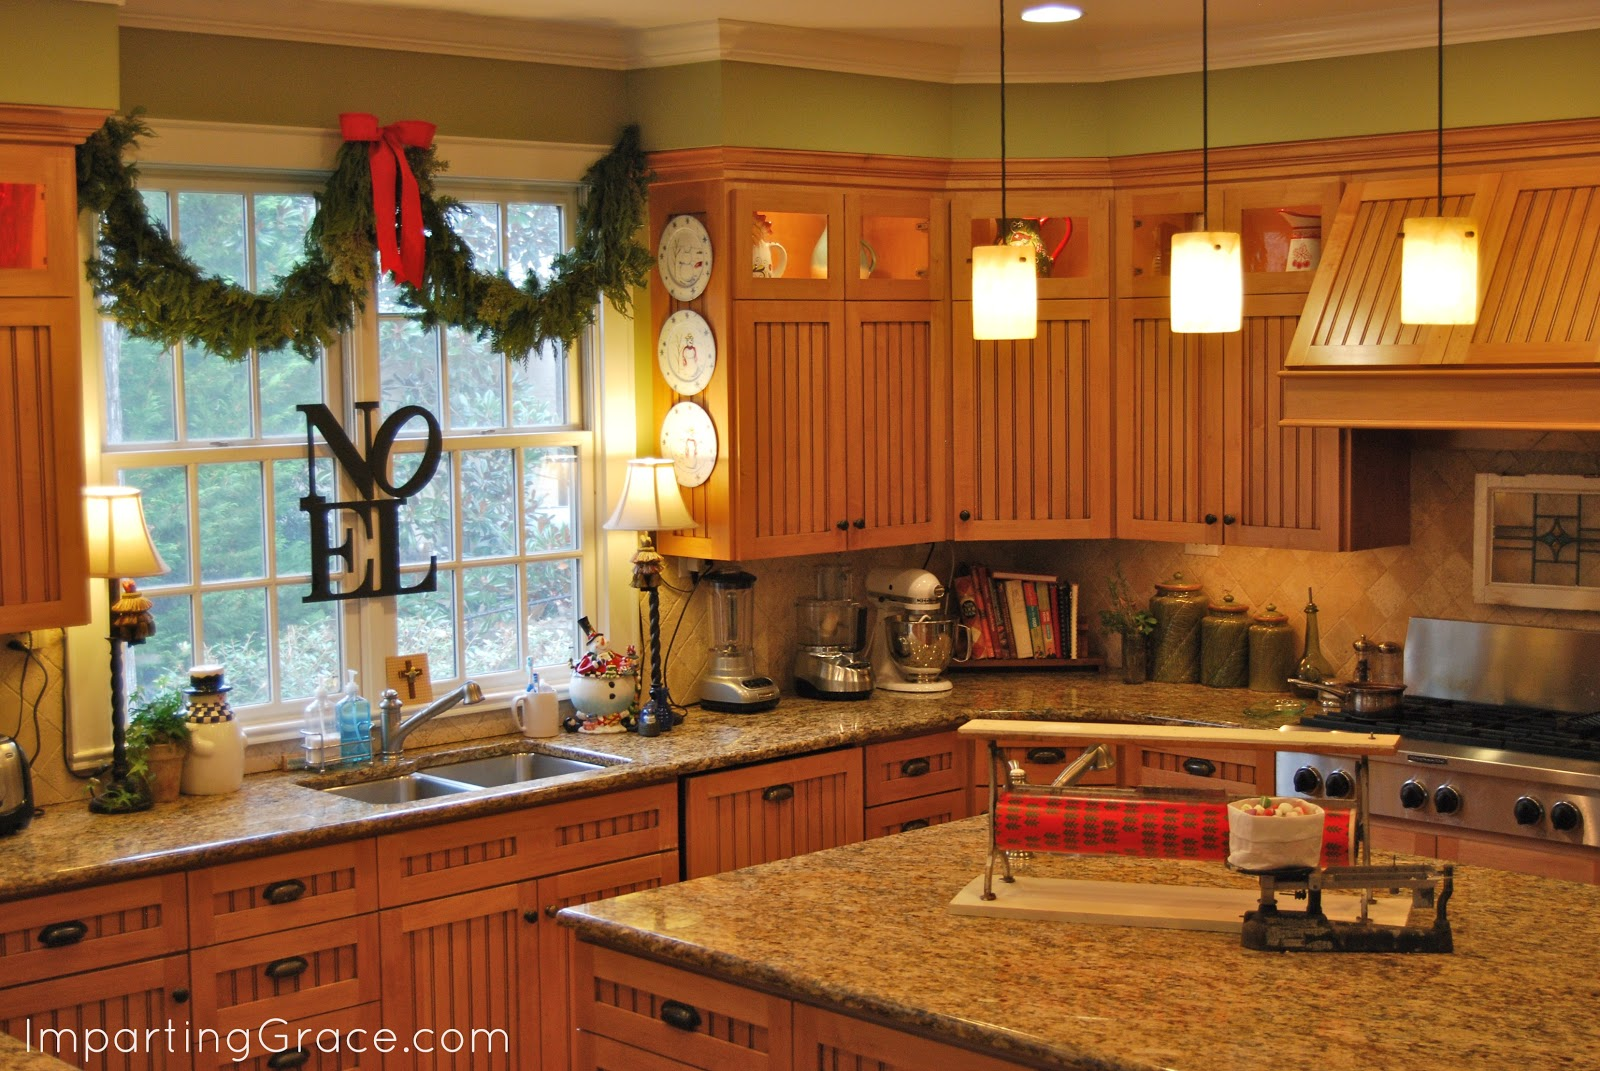 Imparting grace dollar store christmas decorating for How to decorate a kitchen counter